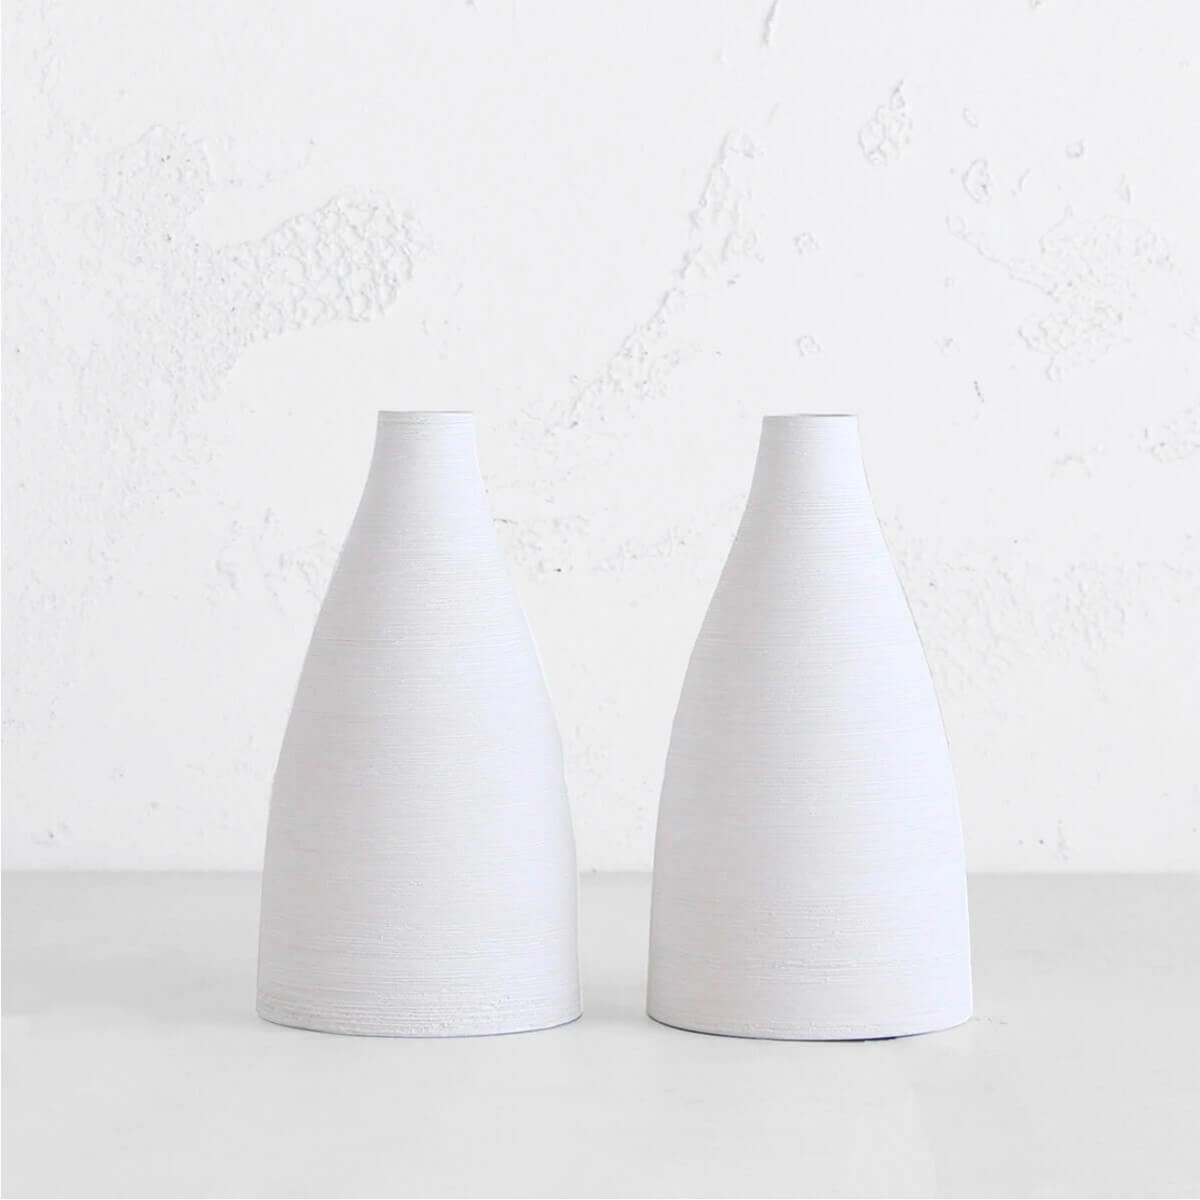 AKI WHITE CERAMIC VASE | PORCELAIN VASE | HOME DECOR